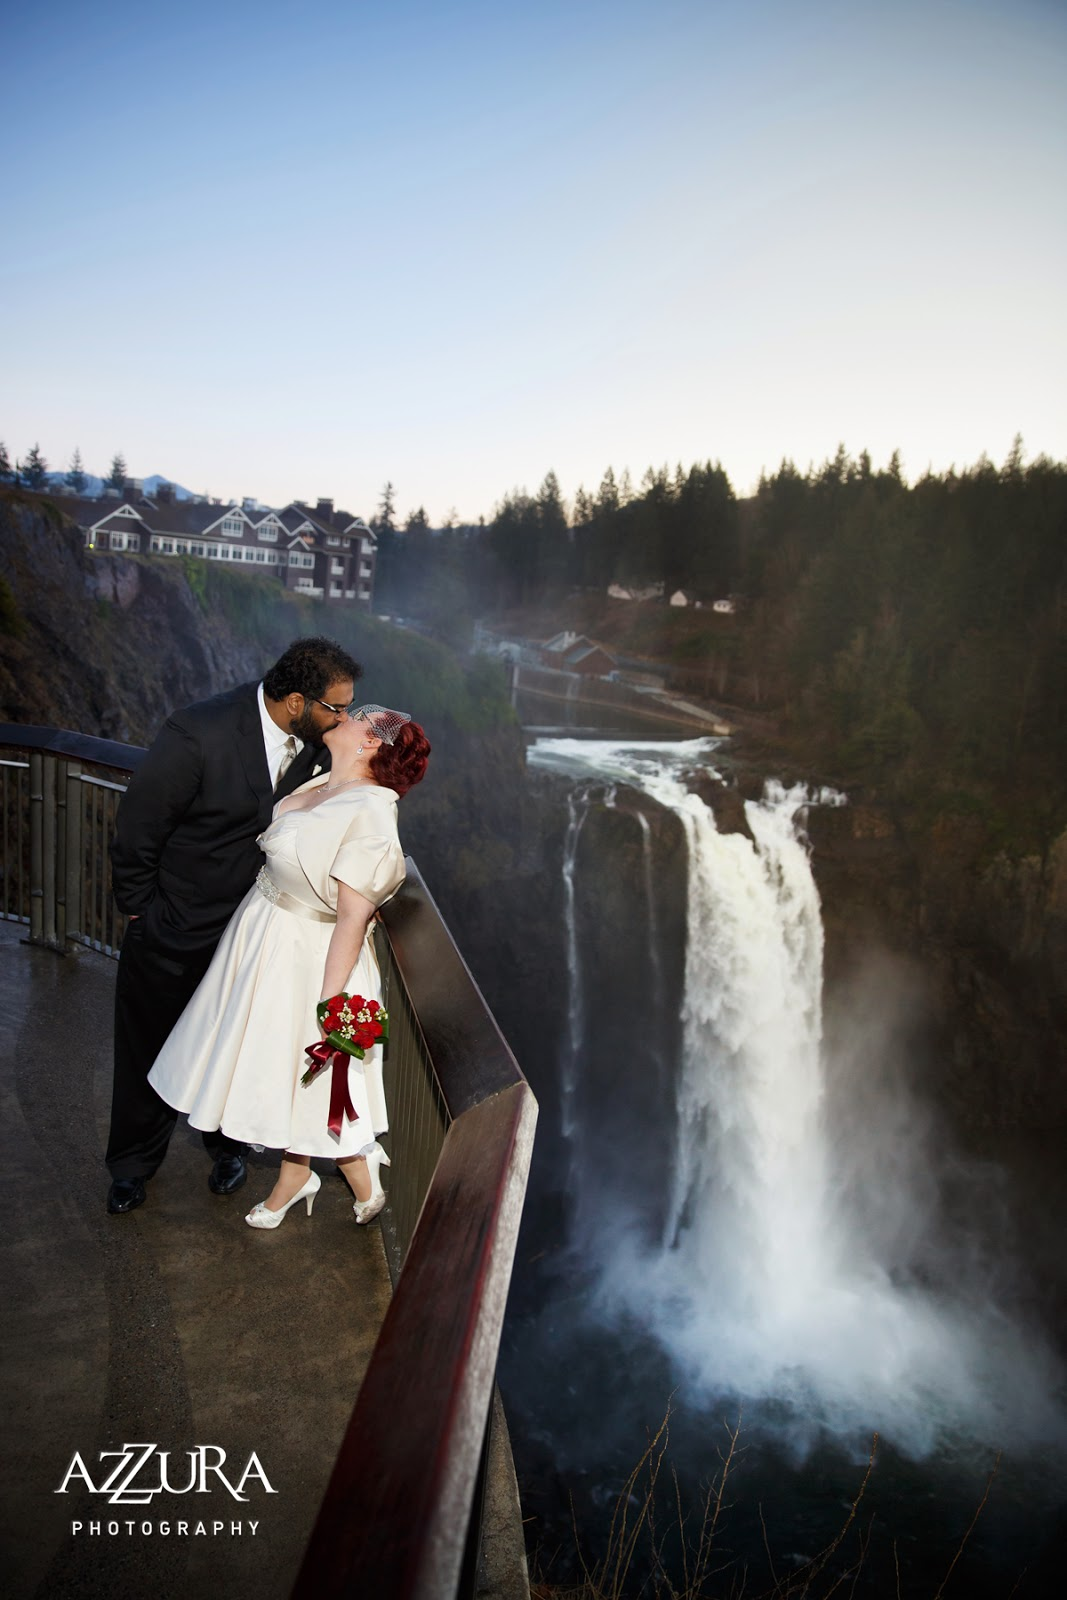 Newly married Abby and Ankur kiss at Snoqualmie Falls - Patricia Stimac, Seattle Wedding Officiant